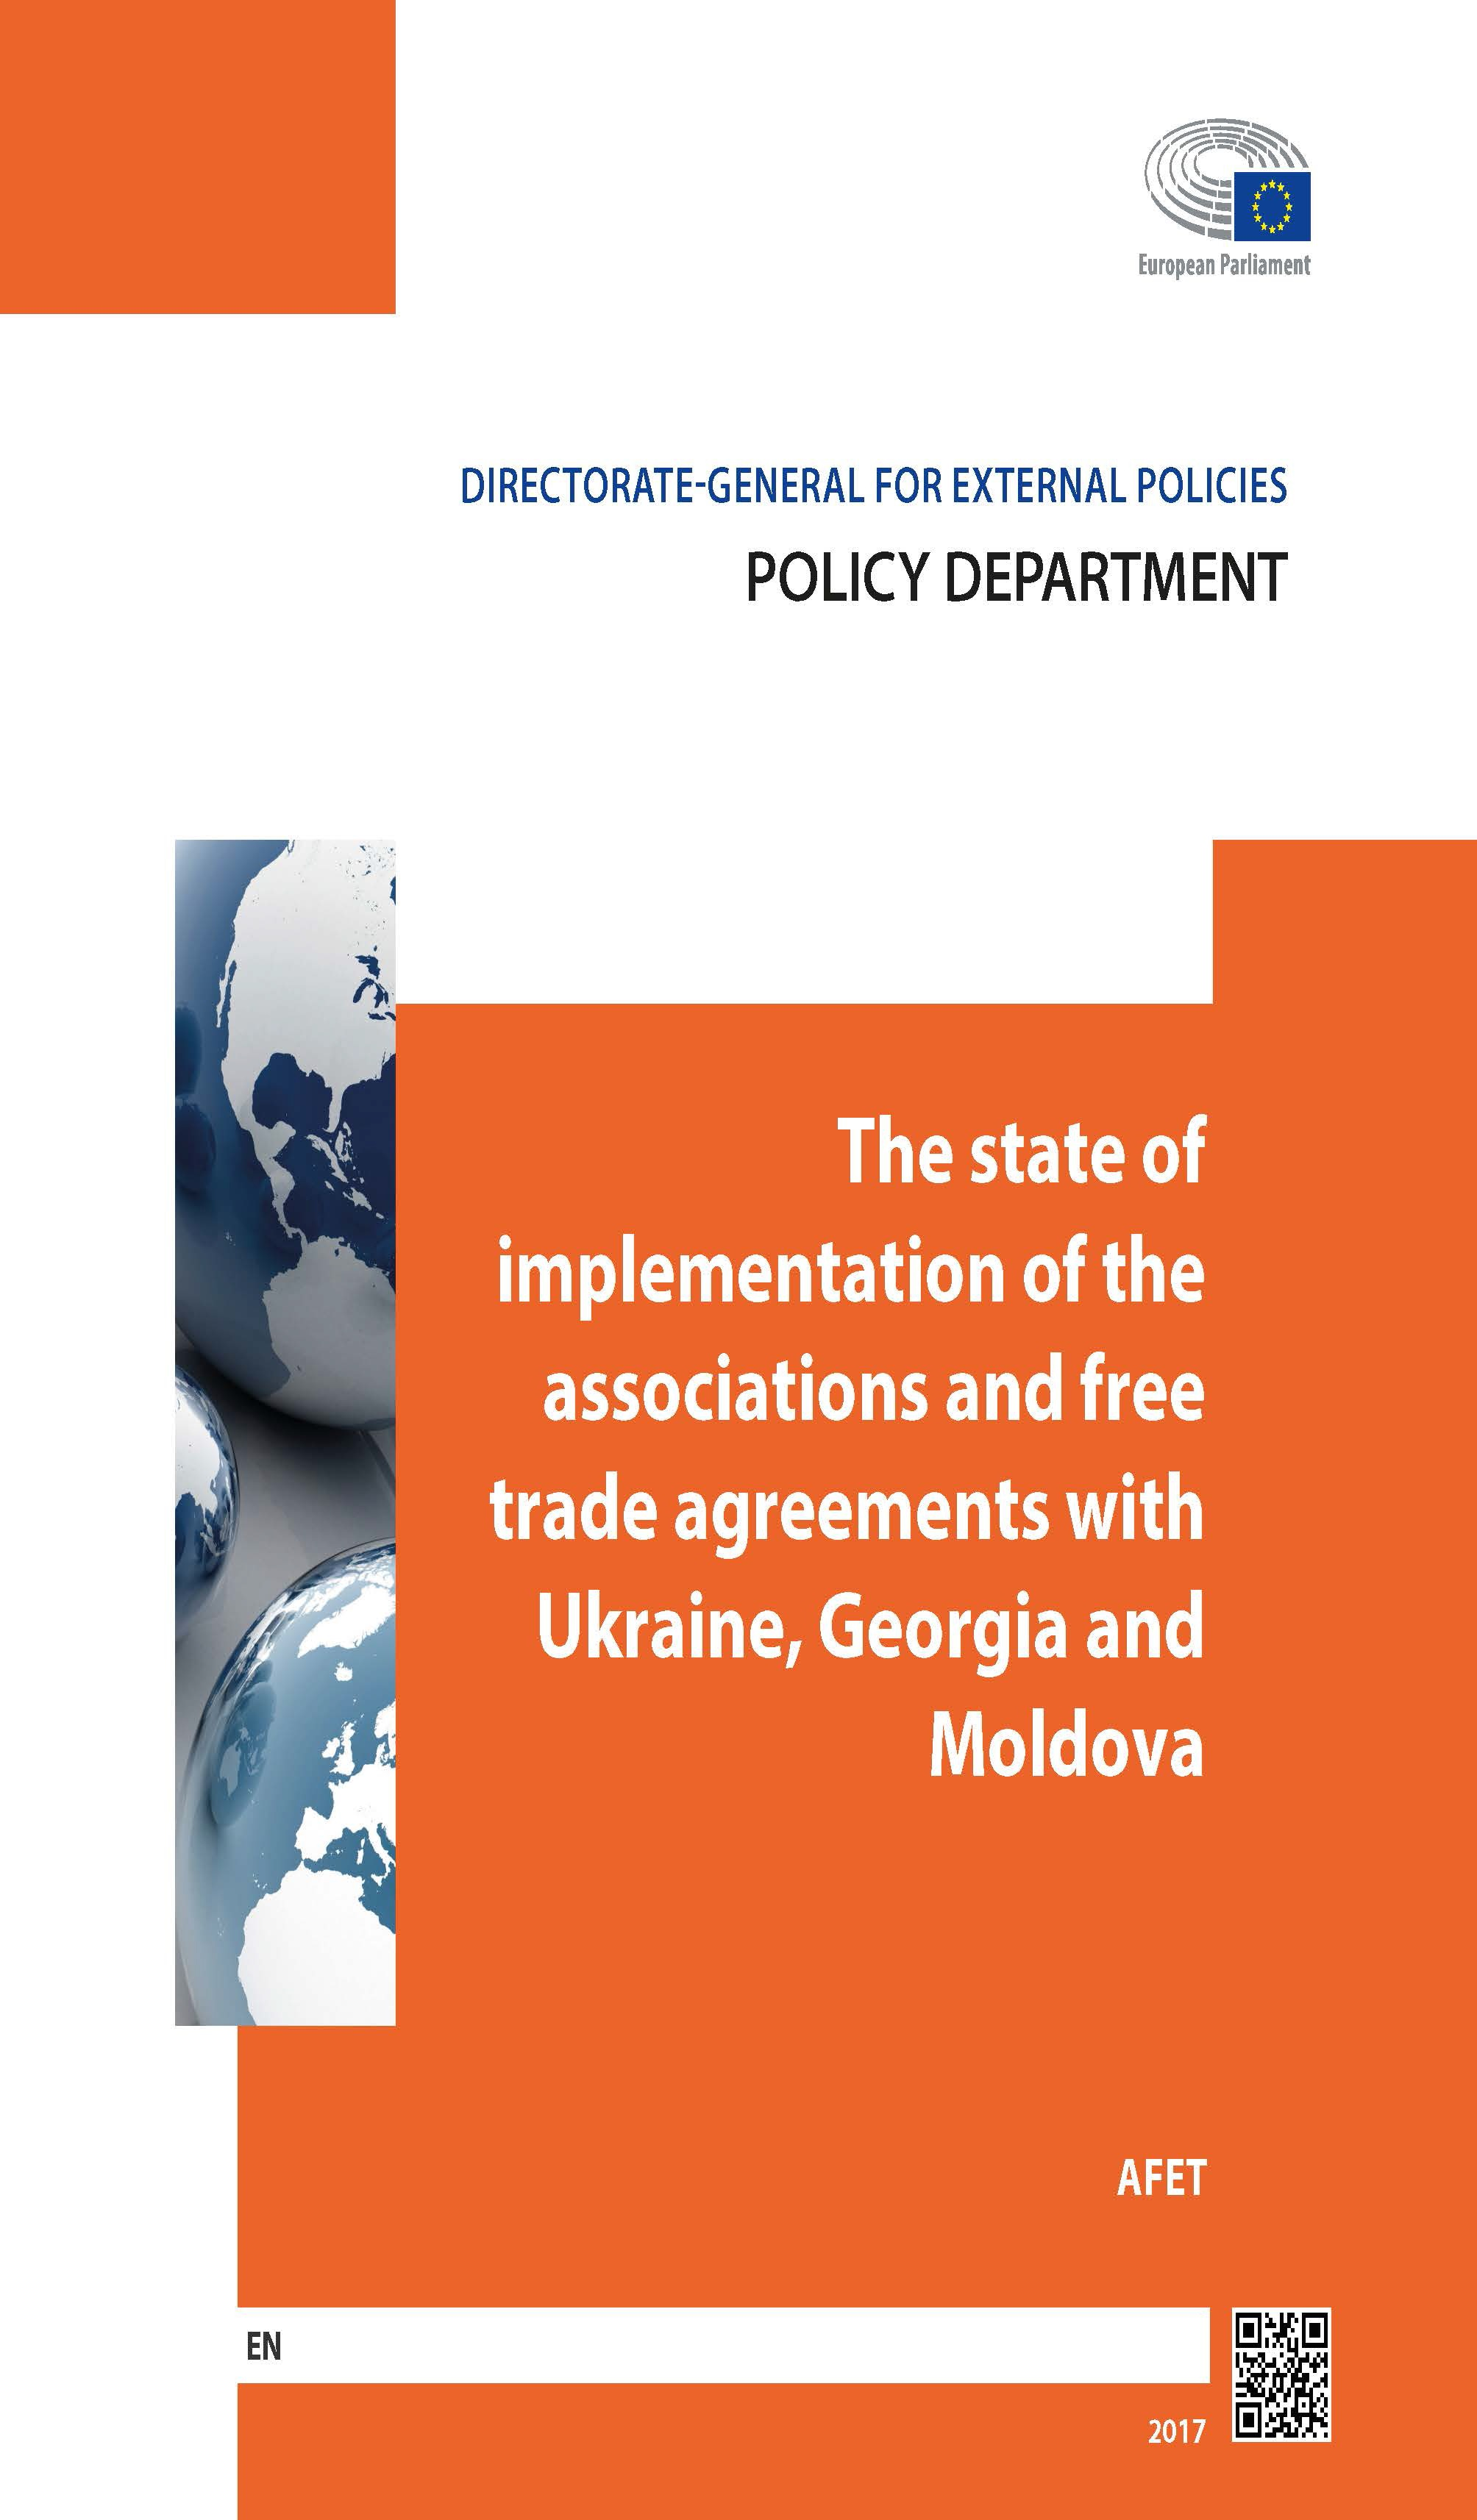 The state of the implementation of the associations and free trade agreements with Ukraine, Georgia and Moldova